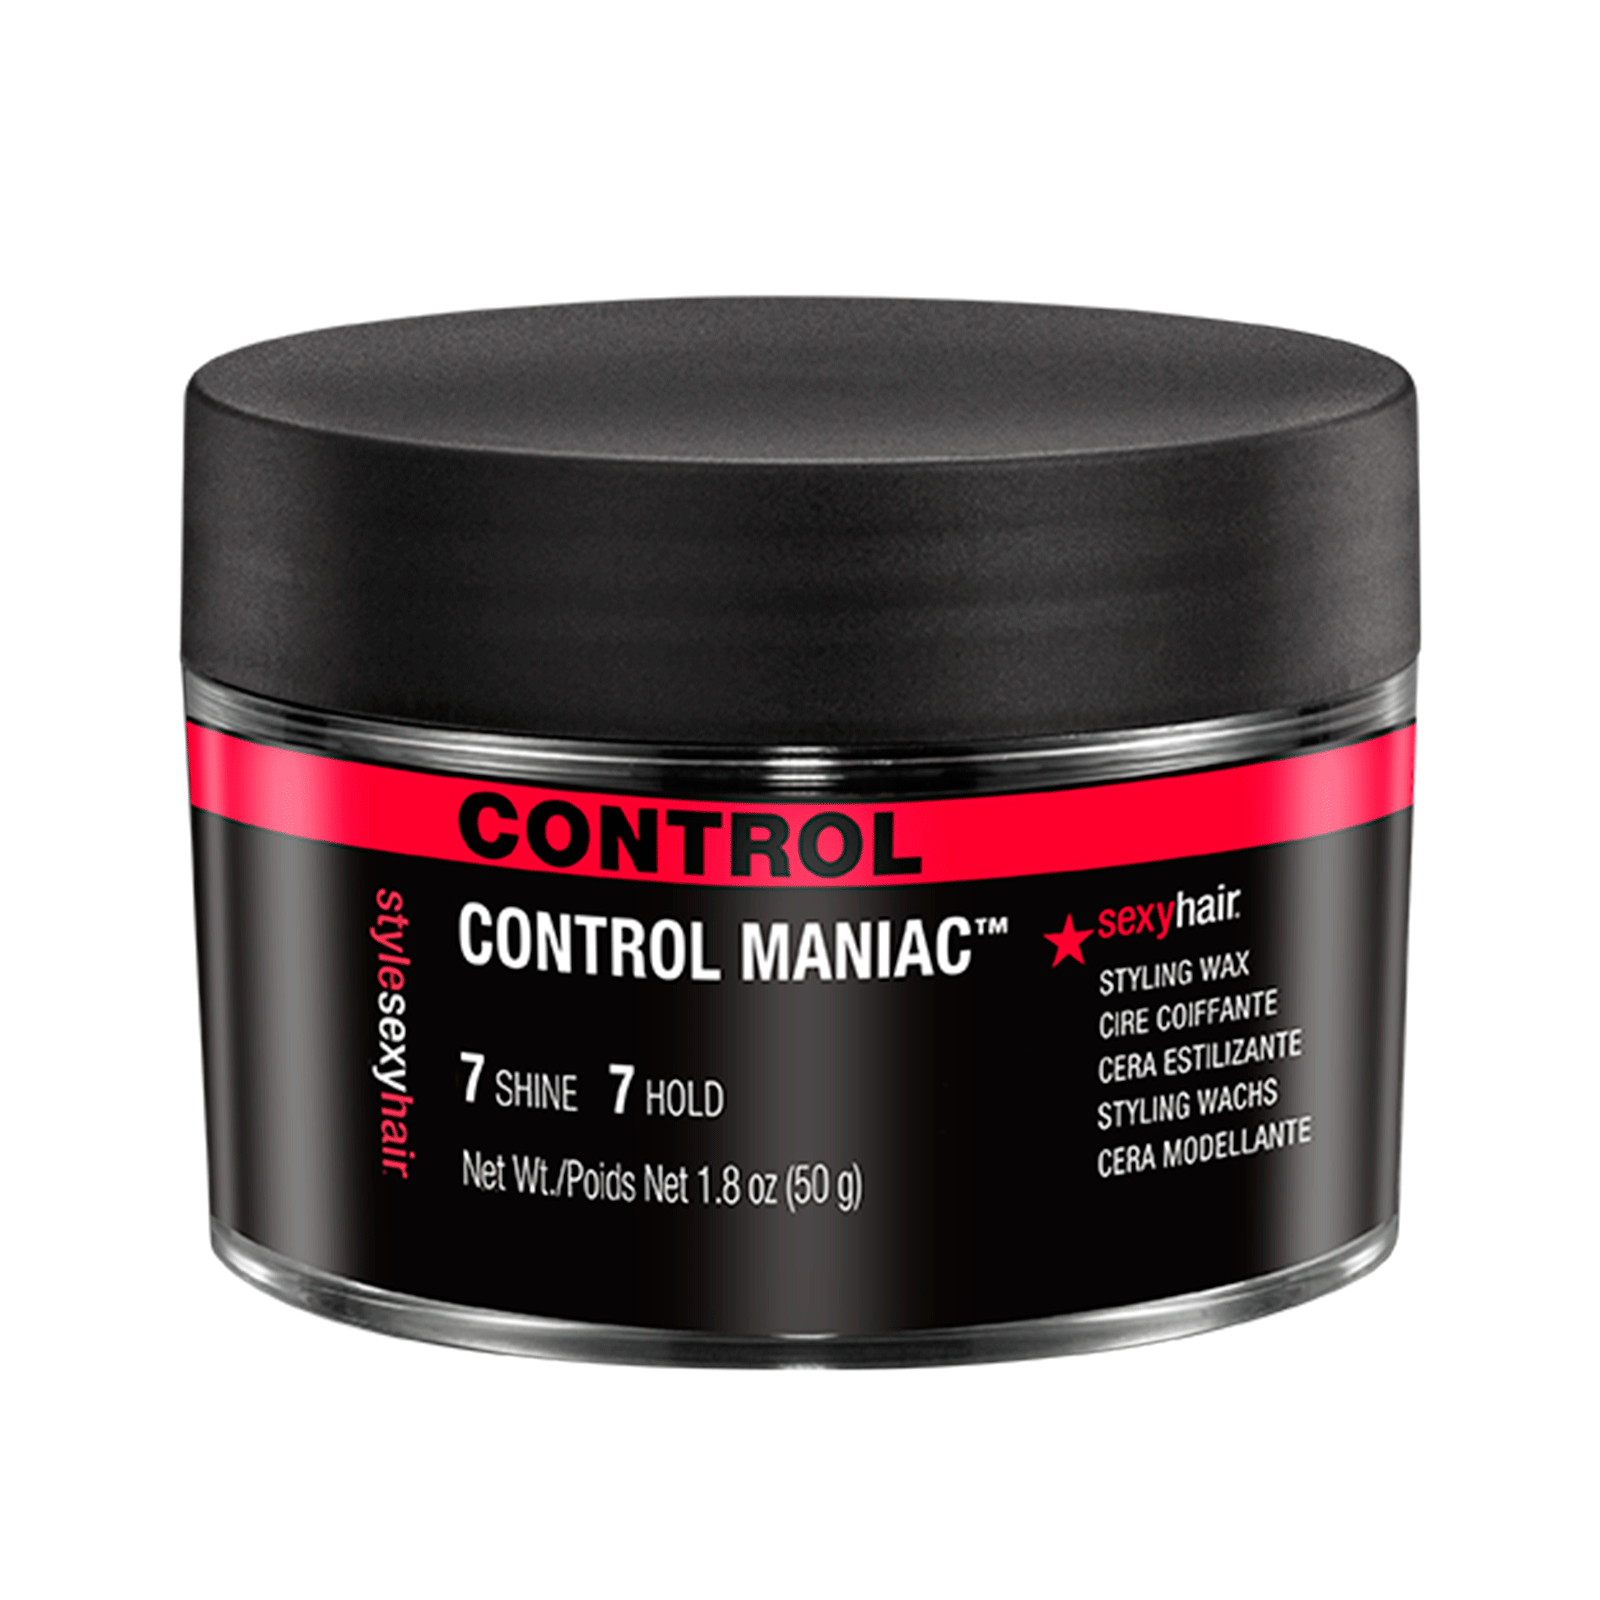 Style Sexy Hair Control Maniac Sexy Hair Concepts CosmoProf